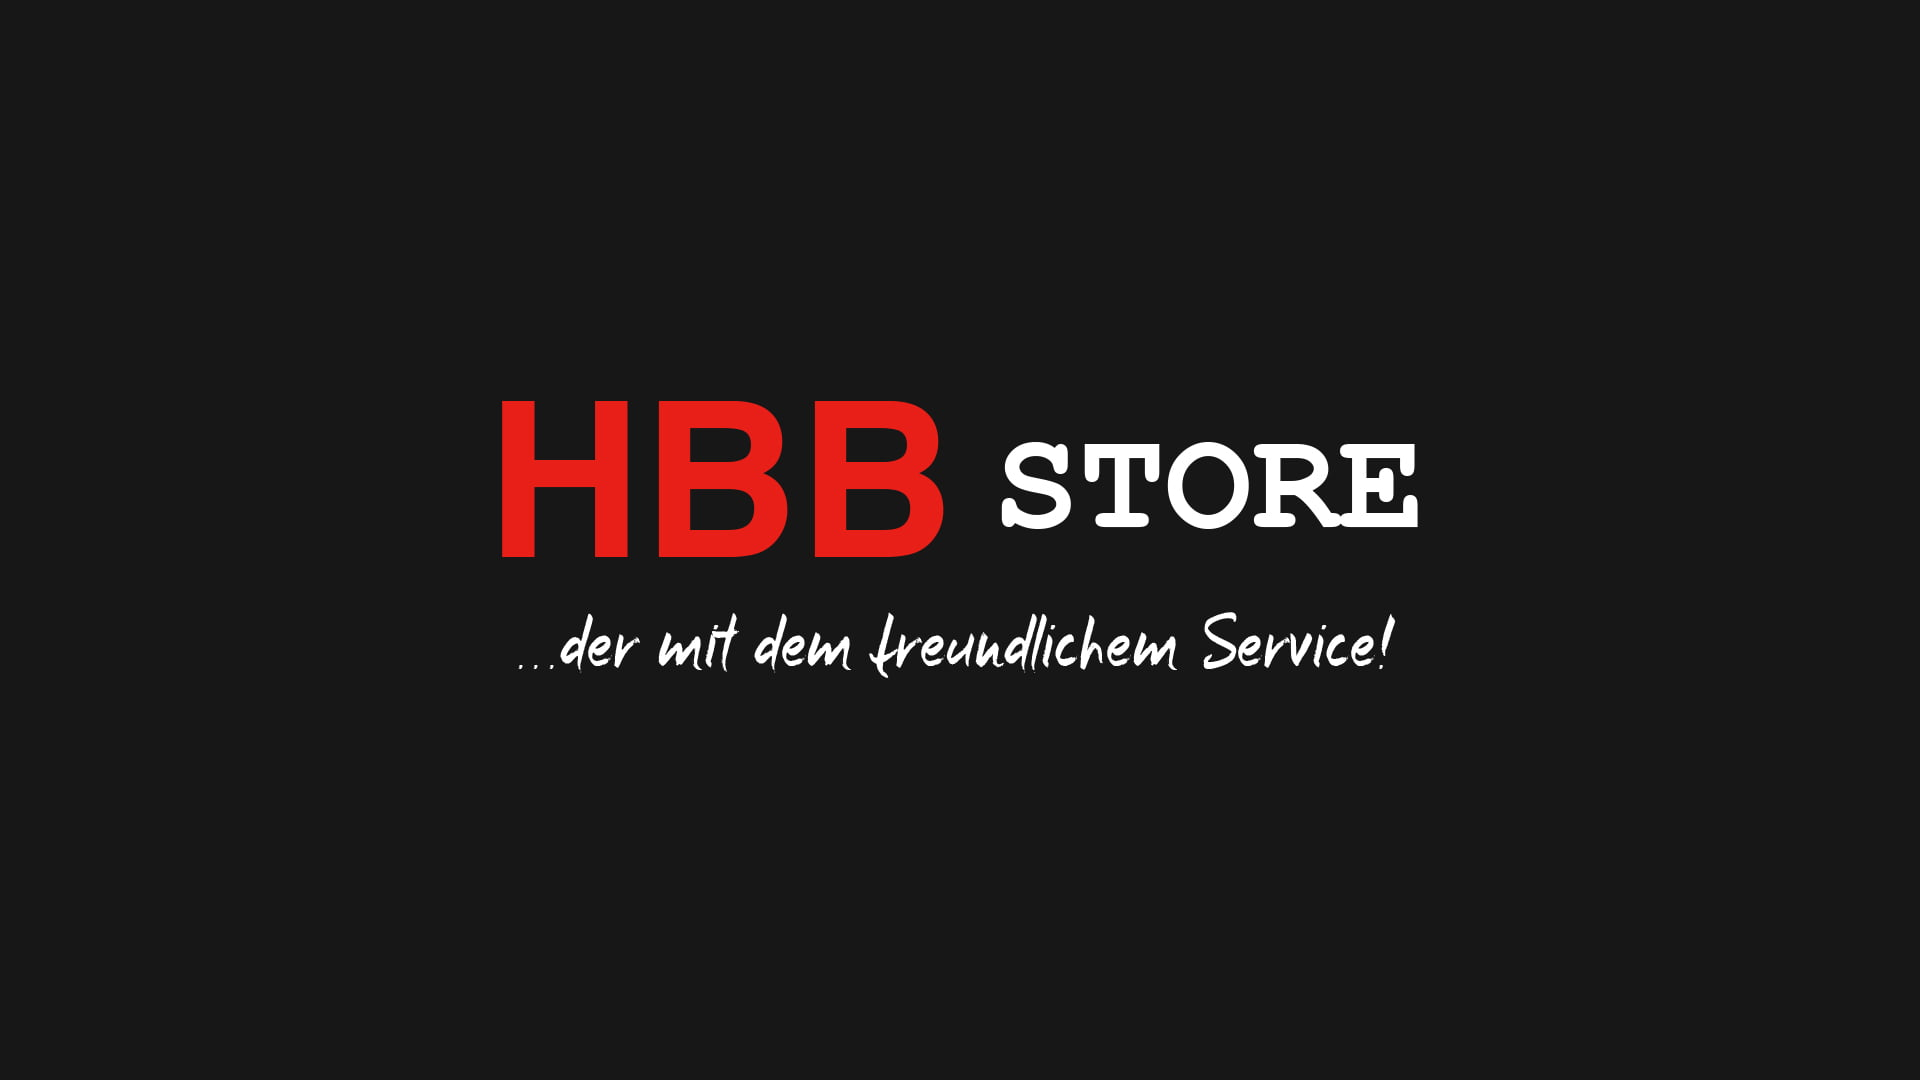 HBB Stores